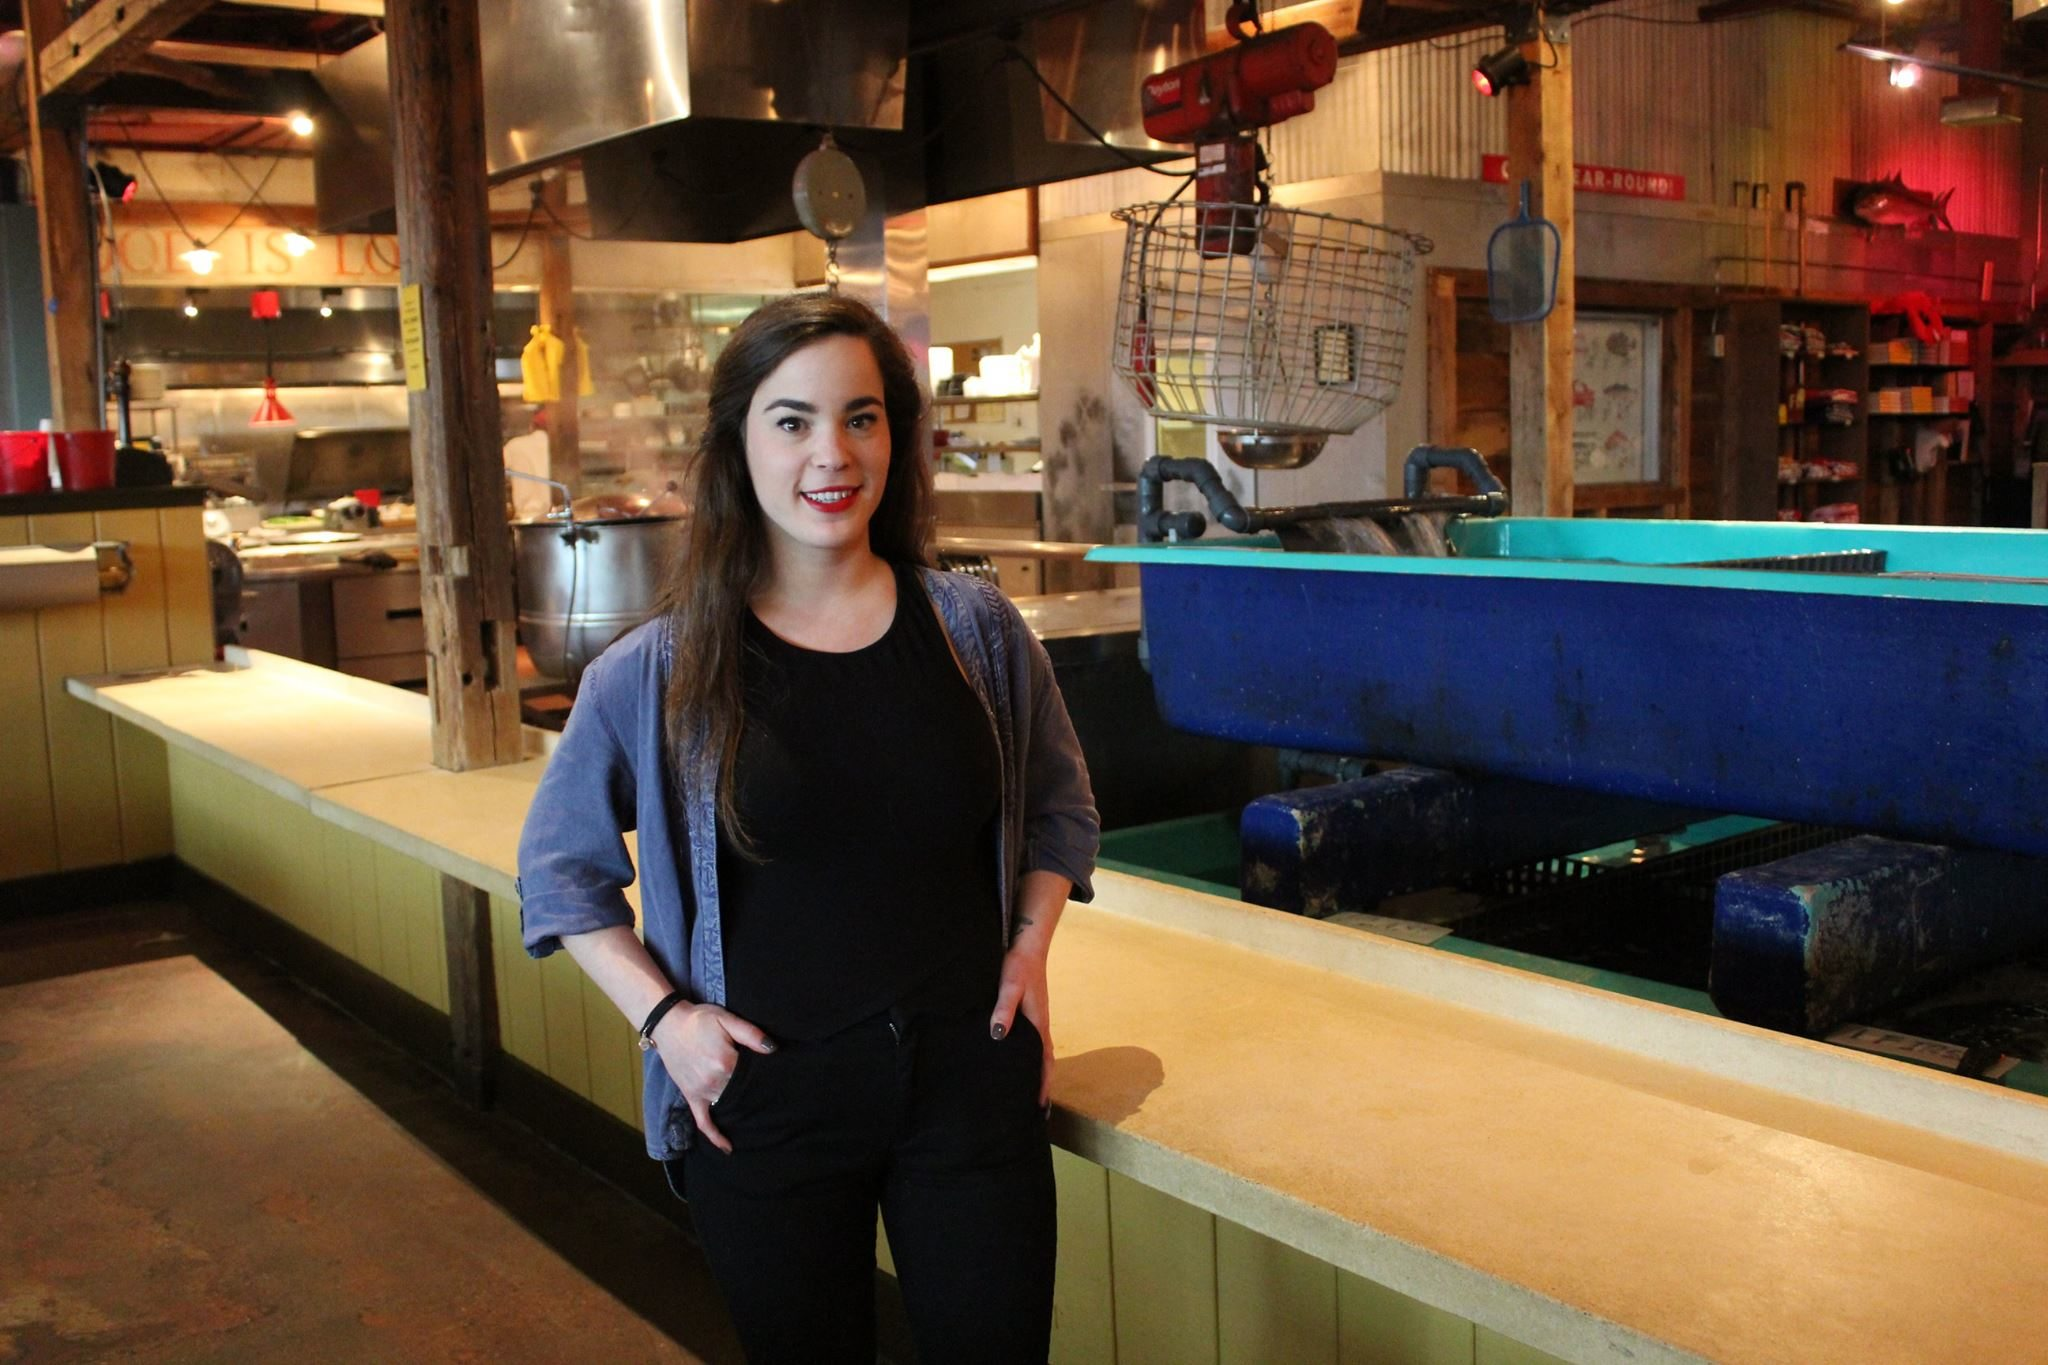 Vanessa Bitton, general manager at Summer Shack, loves her job at the famous Cambridge, Mass. restaurant.